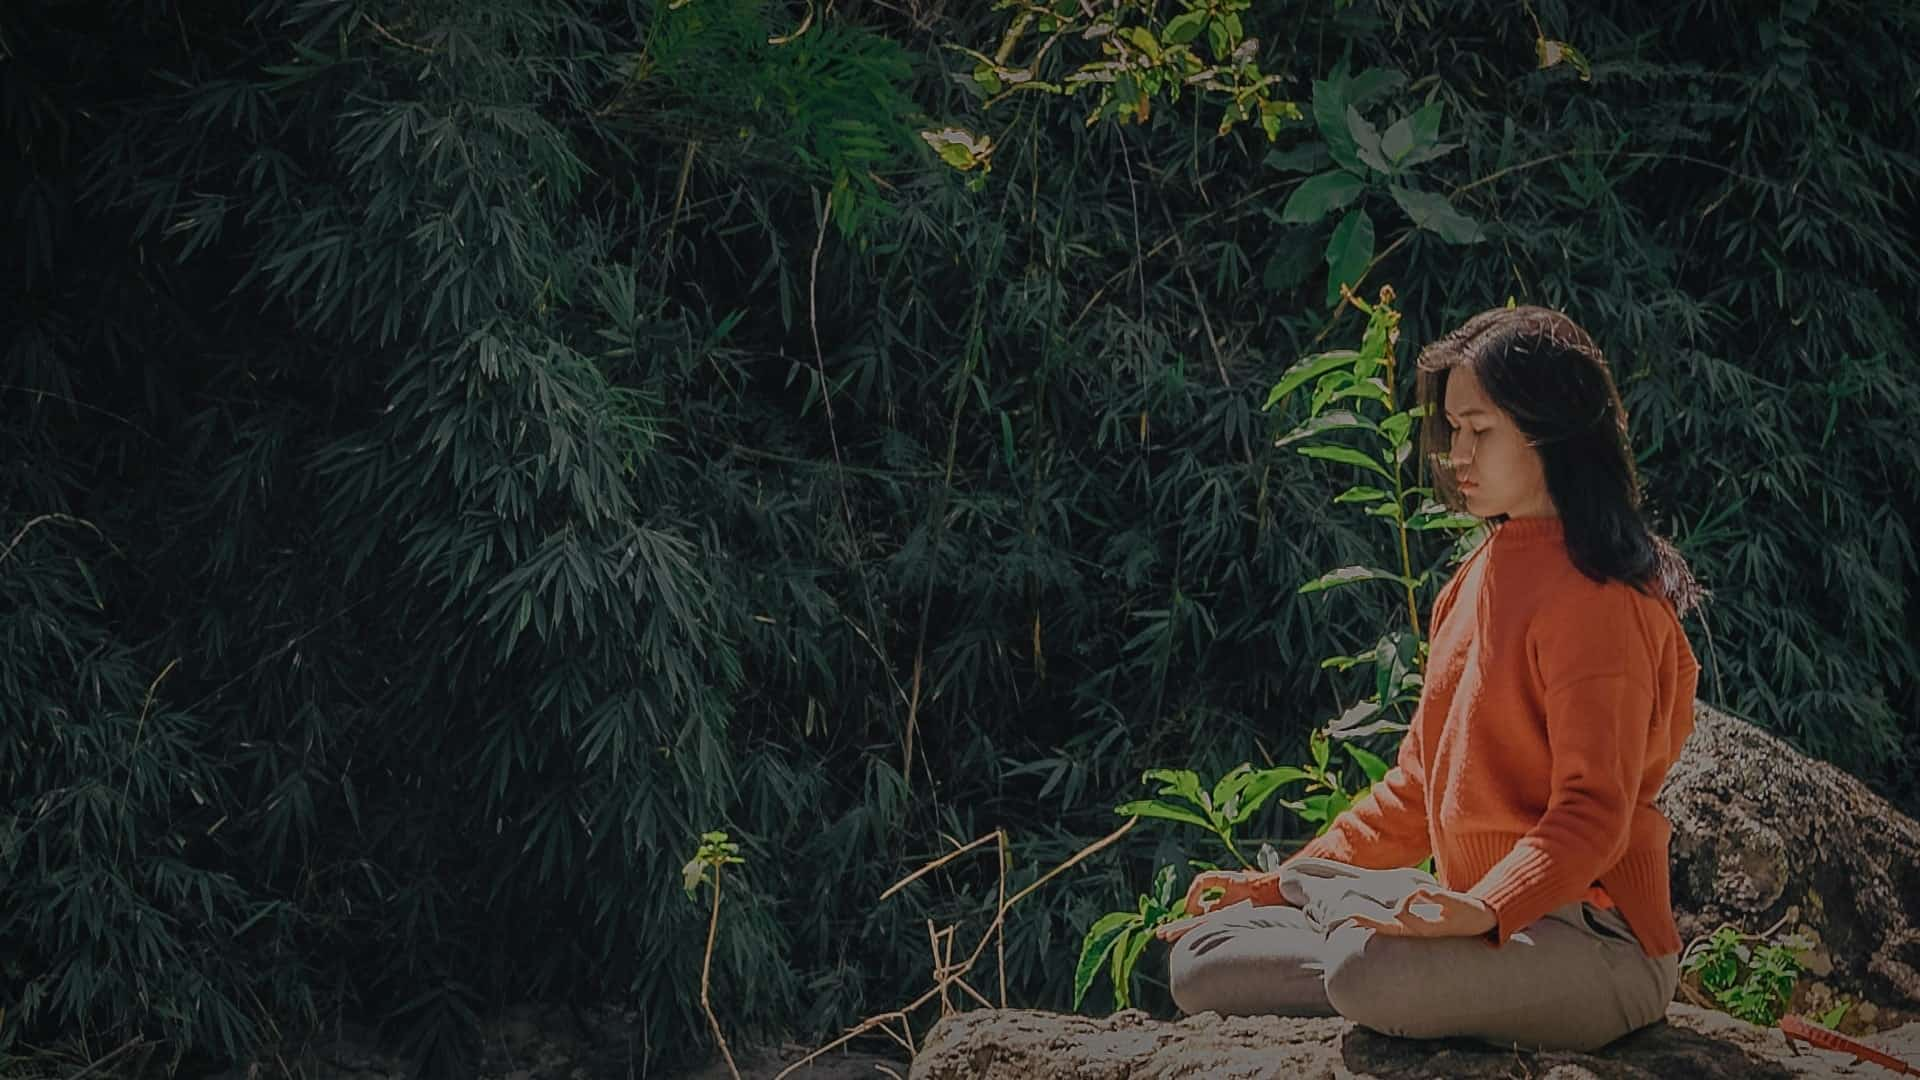 Let's Talk About Meditation in Life